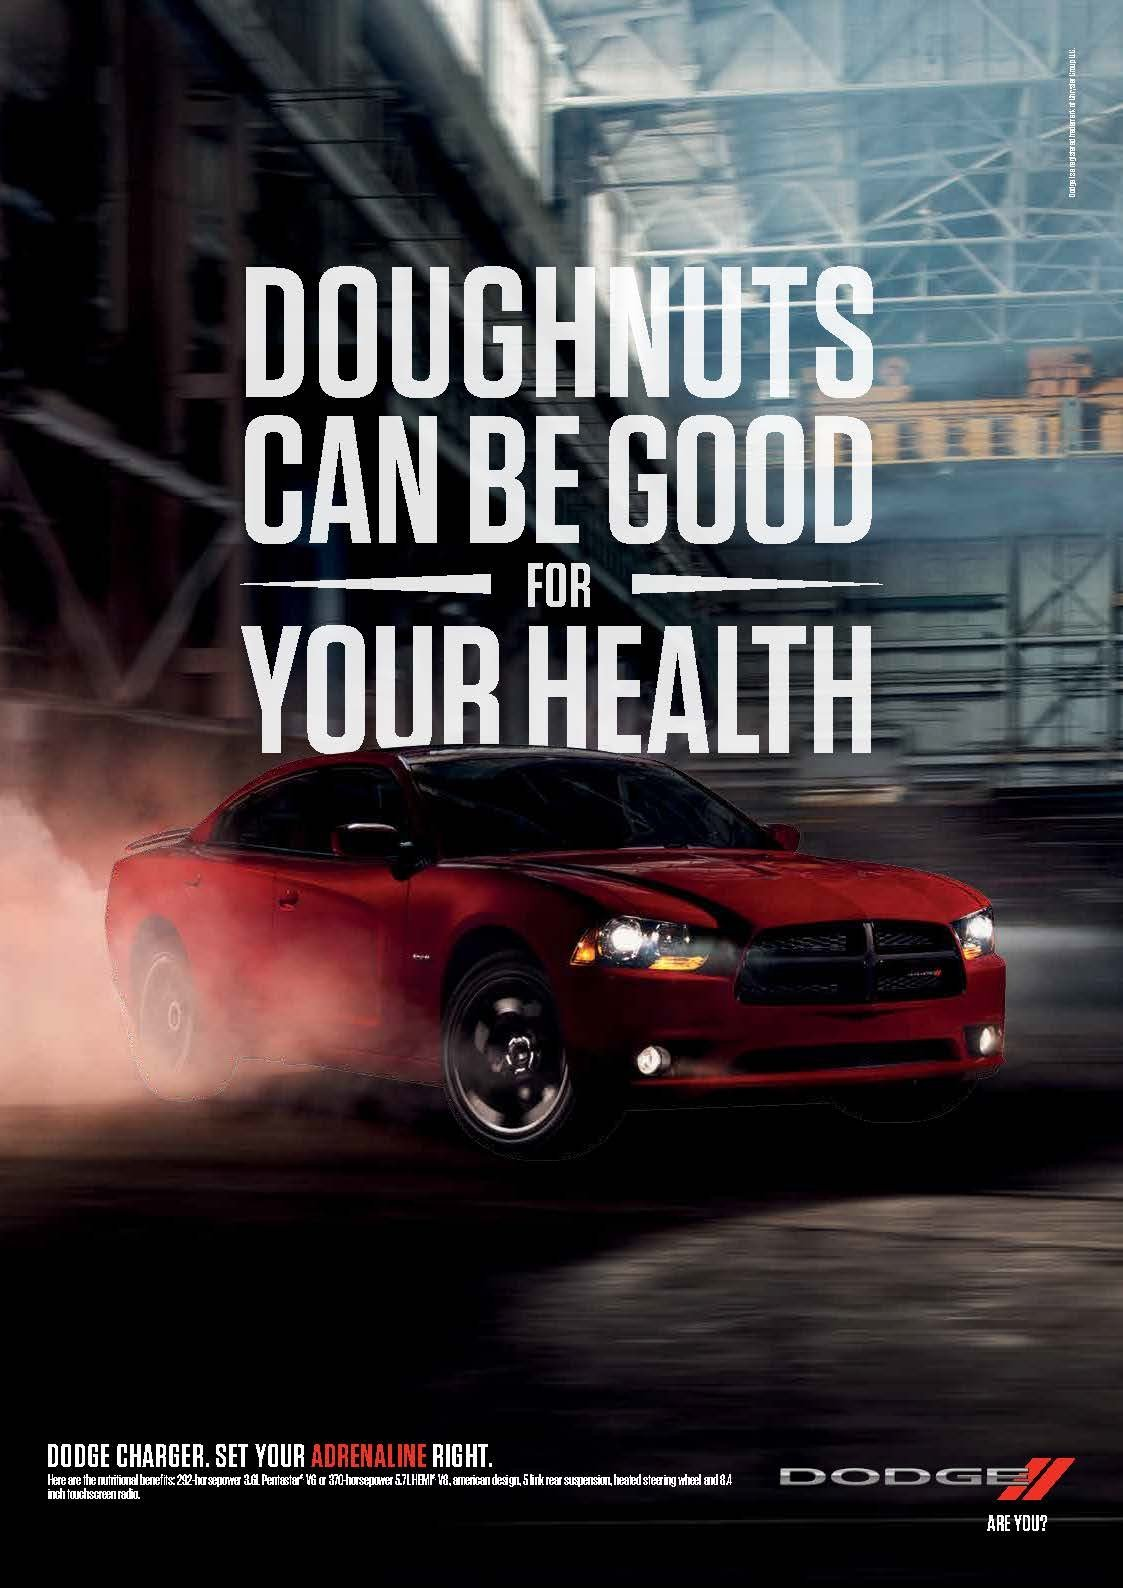 low_DODGE_Charger Doughnuts_single.jpg